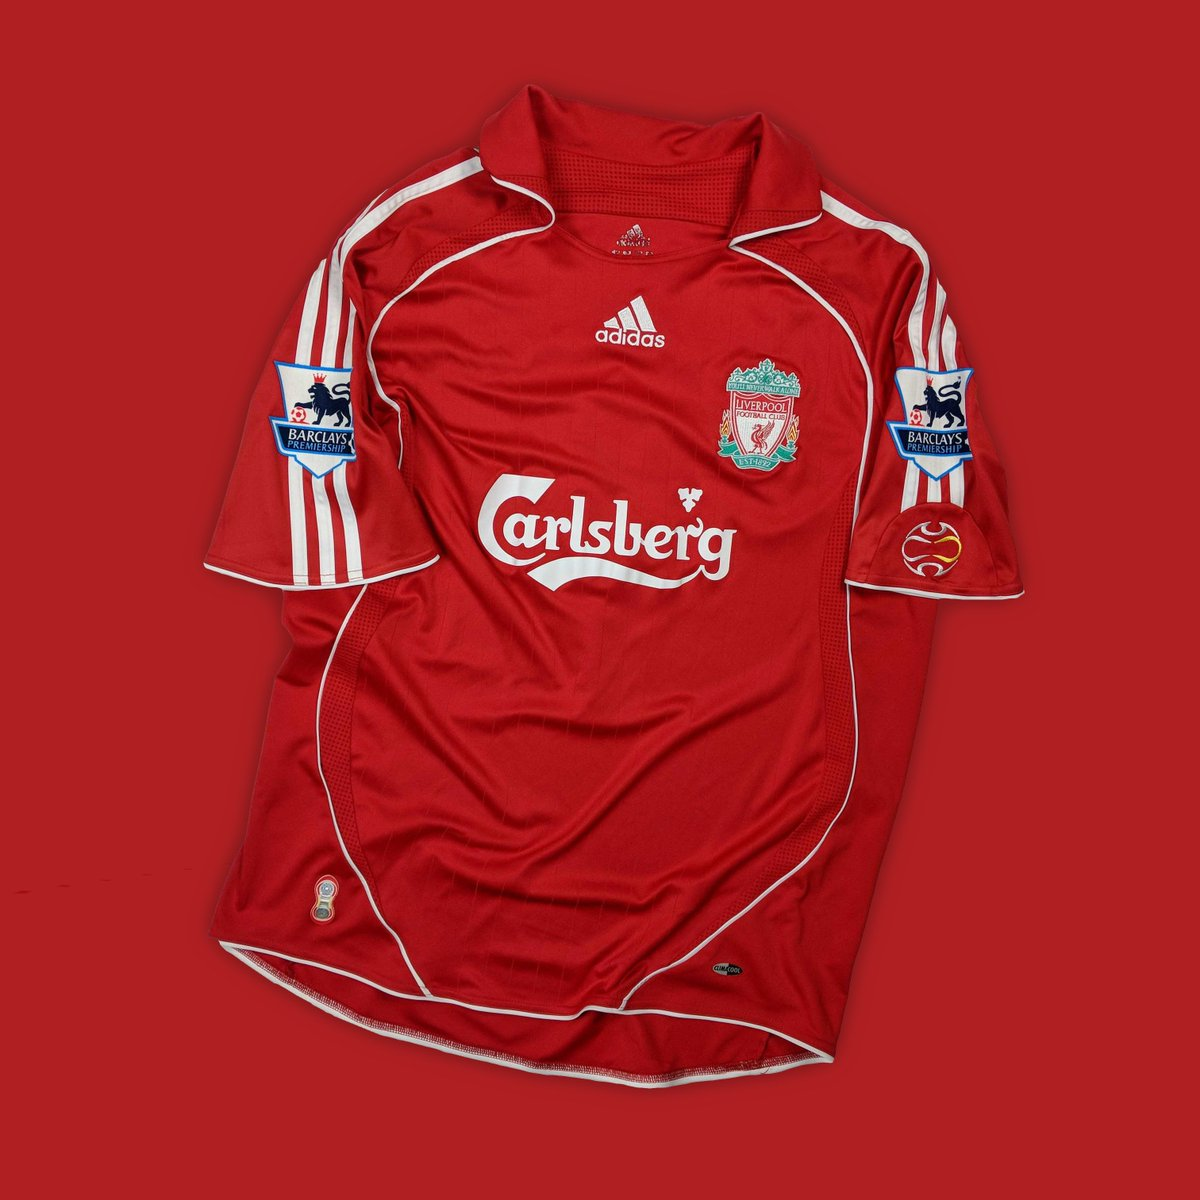 new products e00a2 009a8 Classic Football Shirts on Twitter: